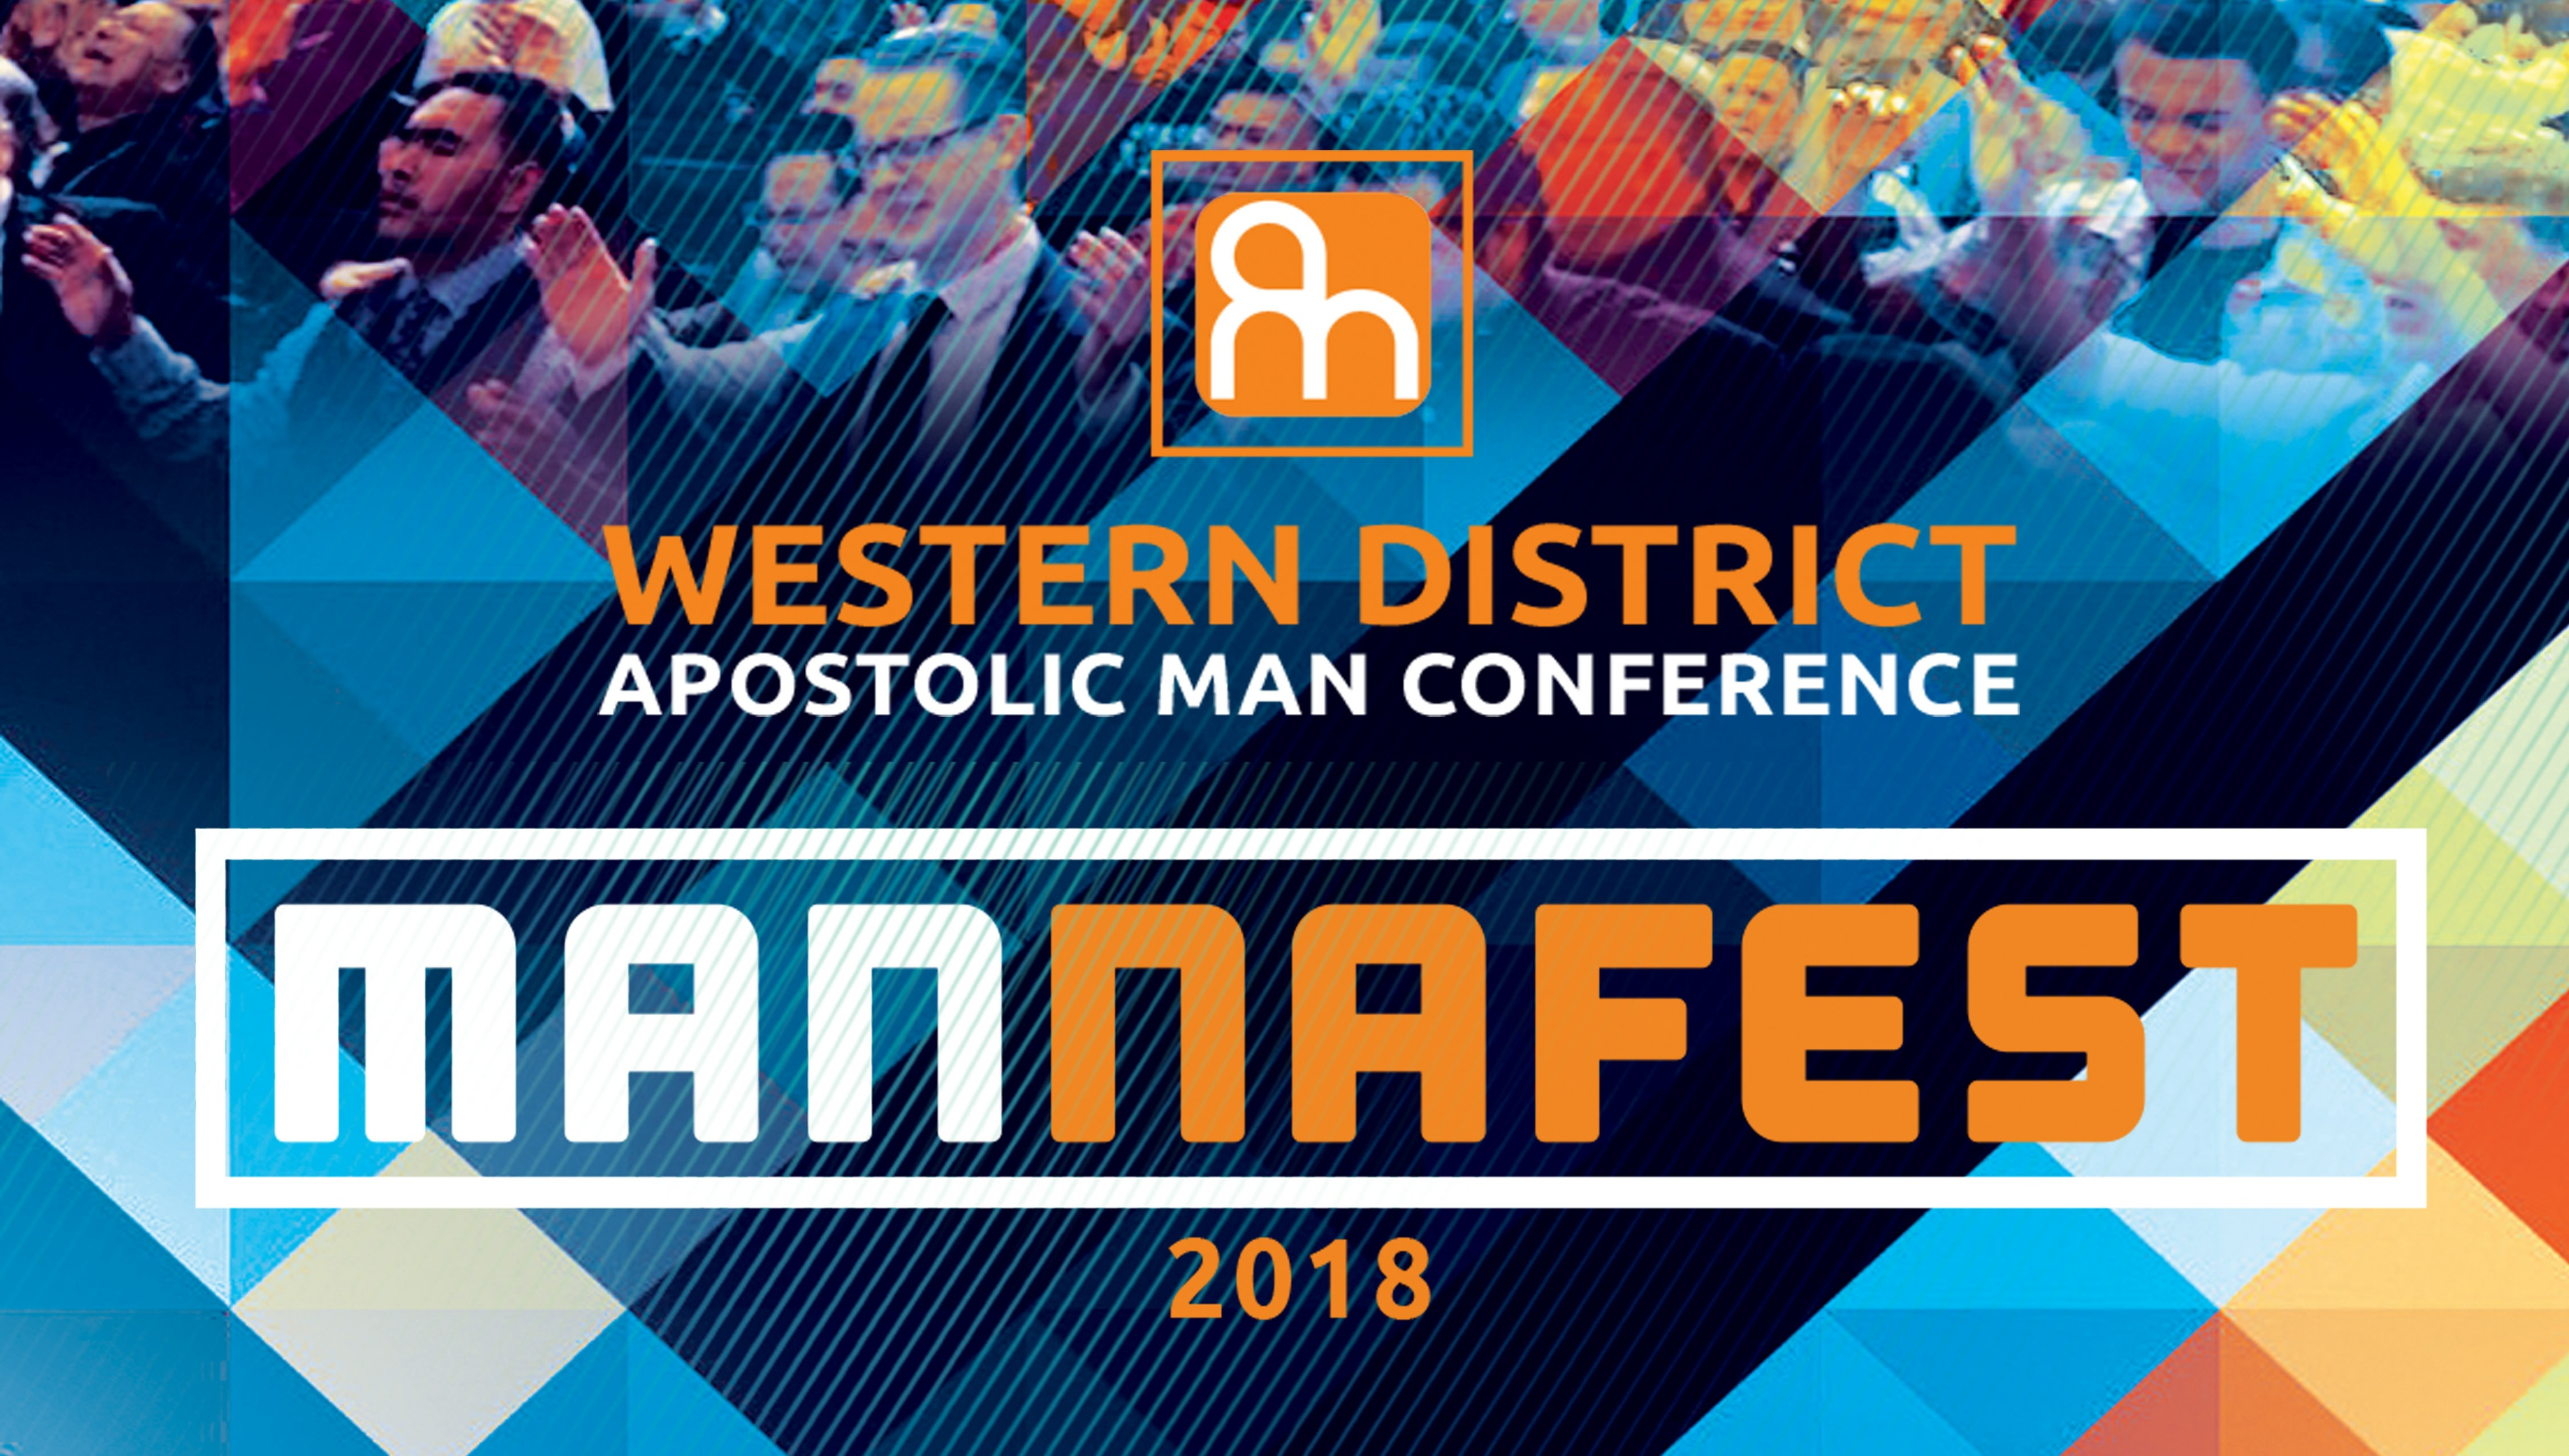 Western District Apostolic Man Conference '18 MP3